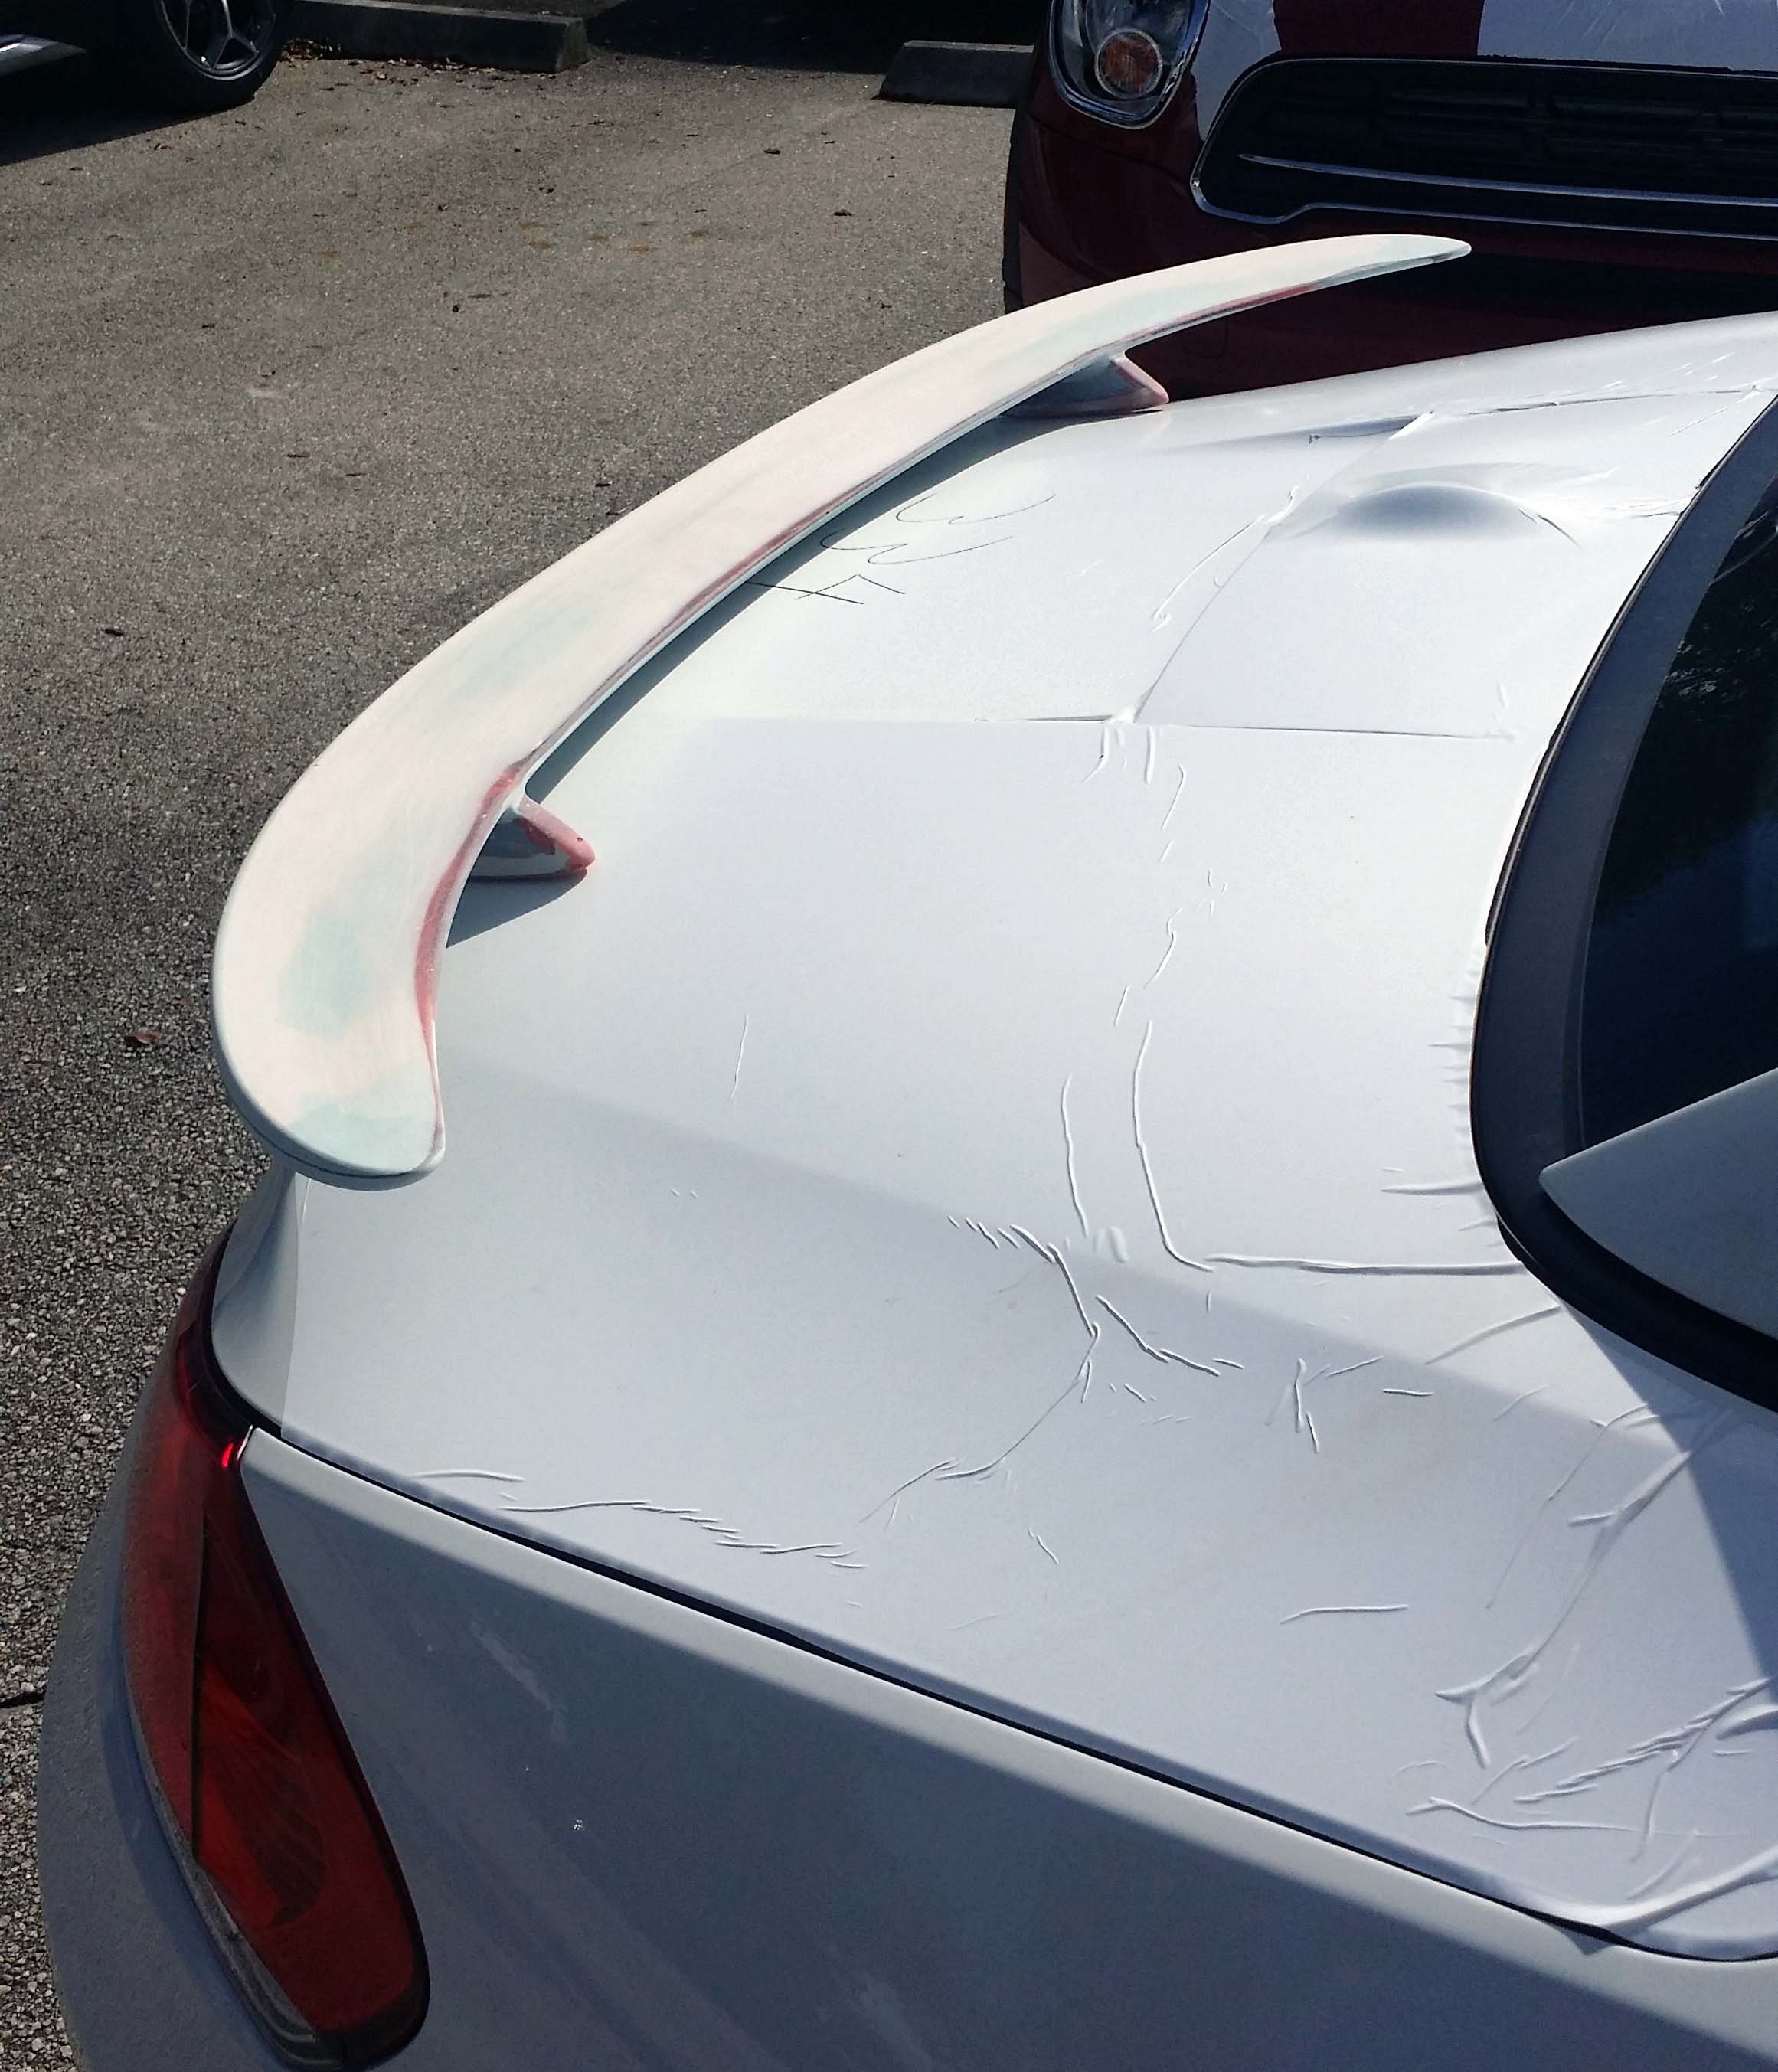 2009 Bmw Z4: 2009+ BMW Z4 Euro Style 2 Post Rear Wing Spoiler